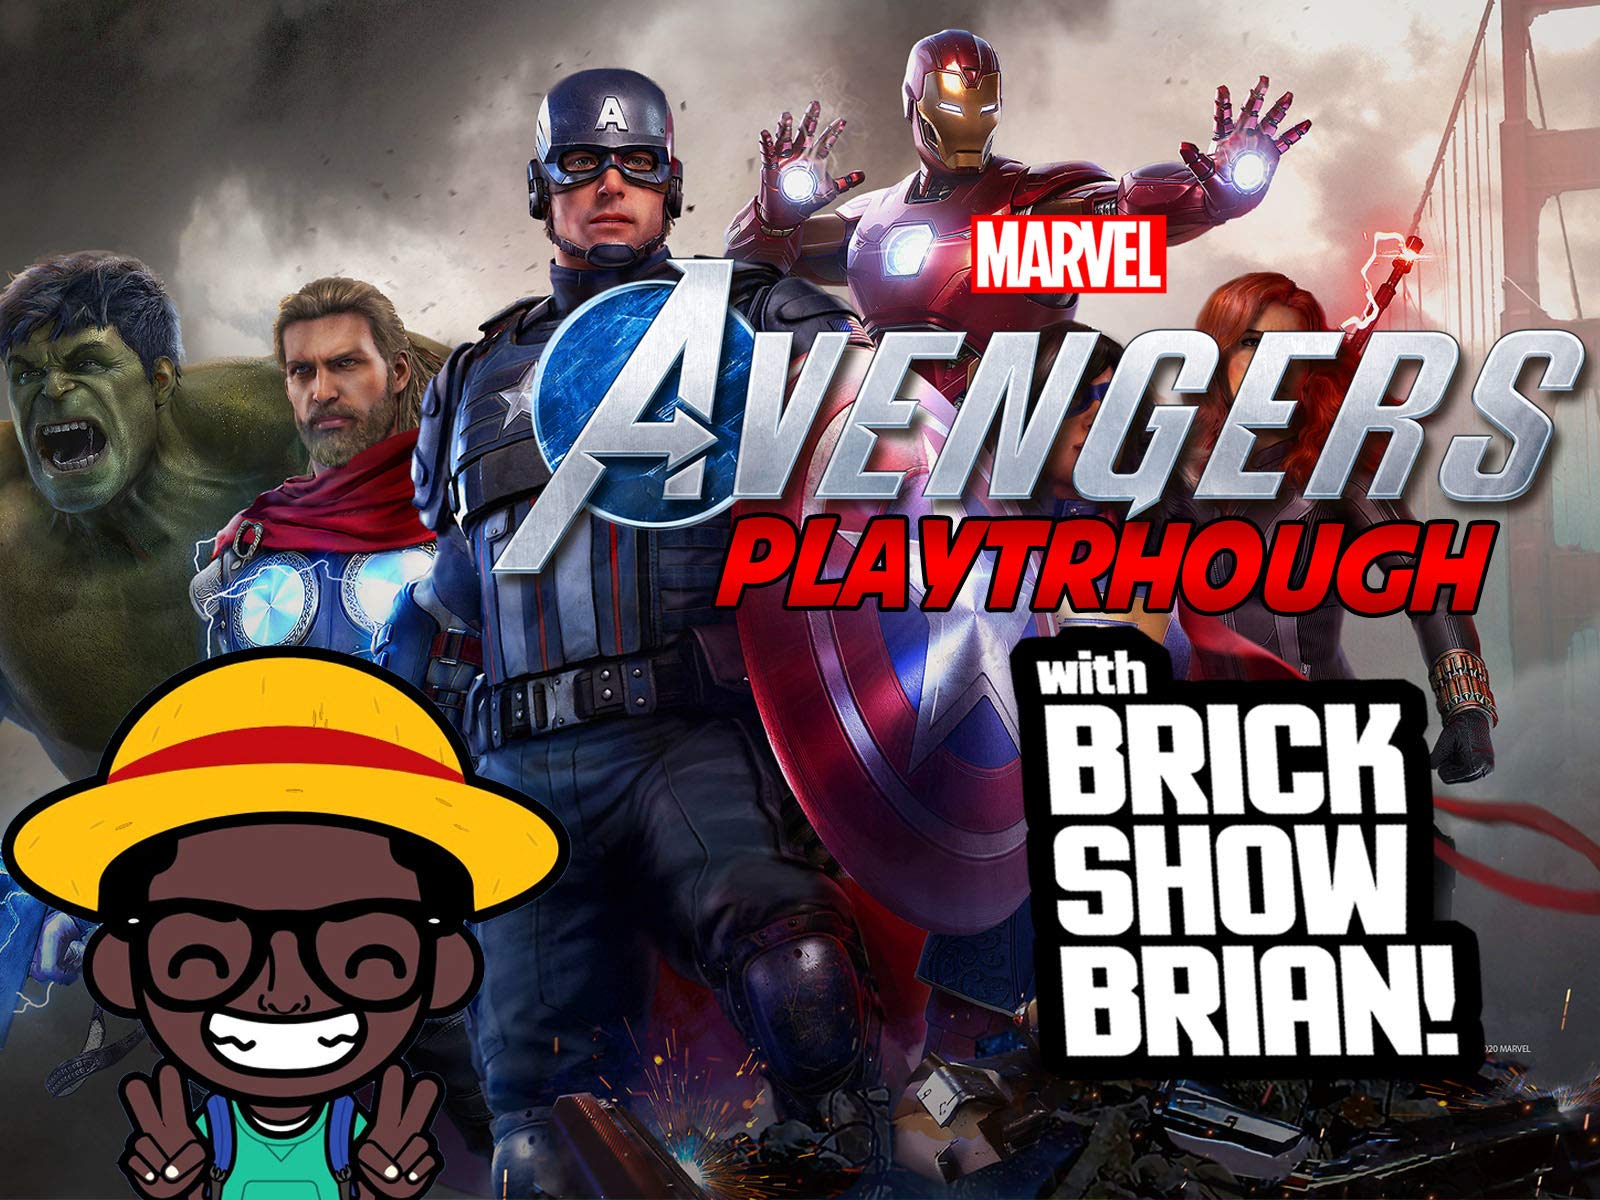 Marvel Avengers Playthrough With Brick Show Brian on Amazon Prime Instant Video UK